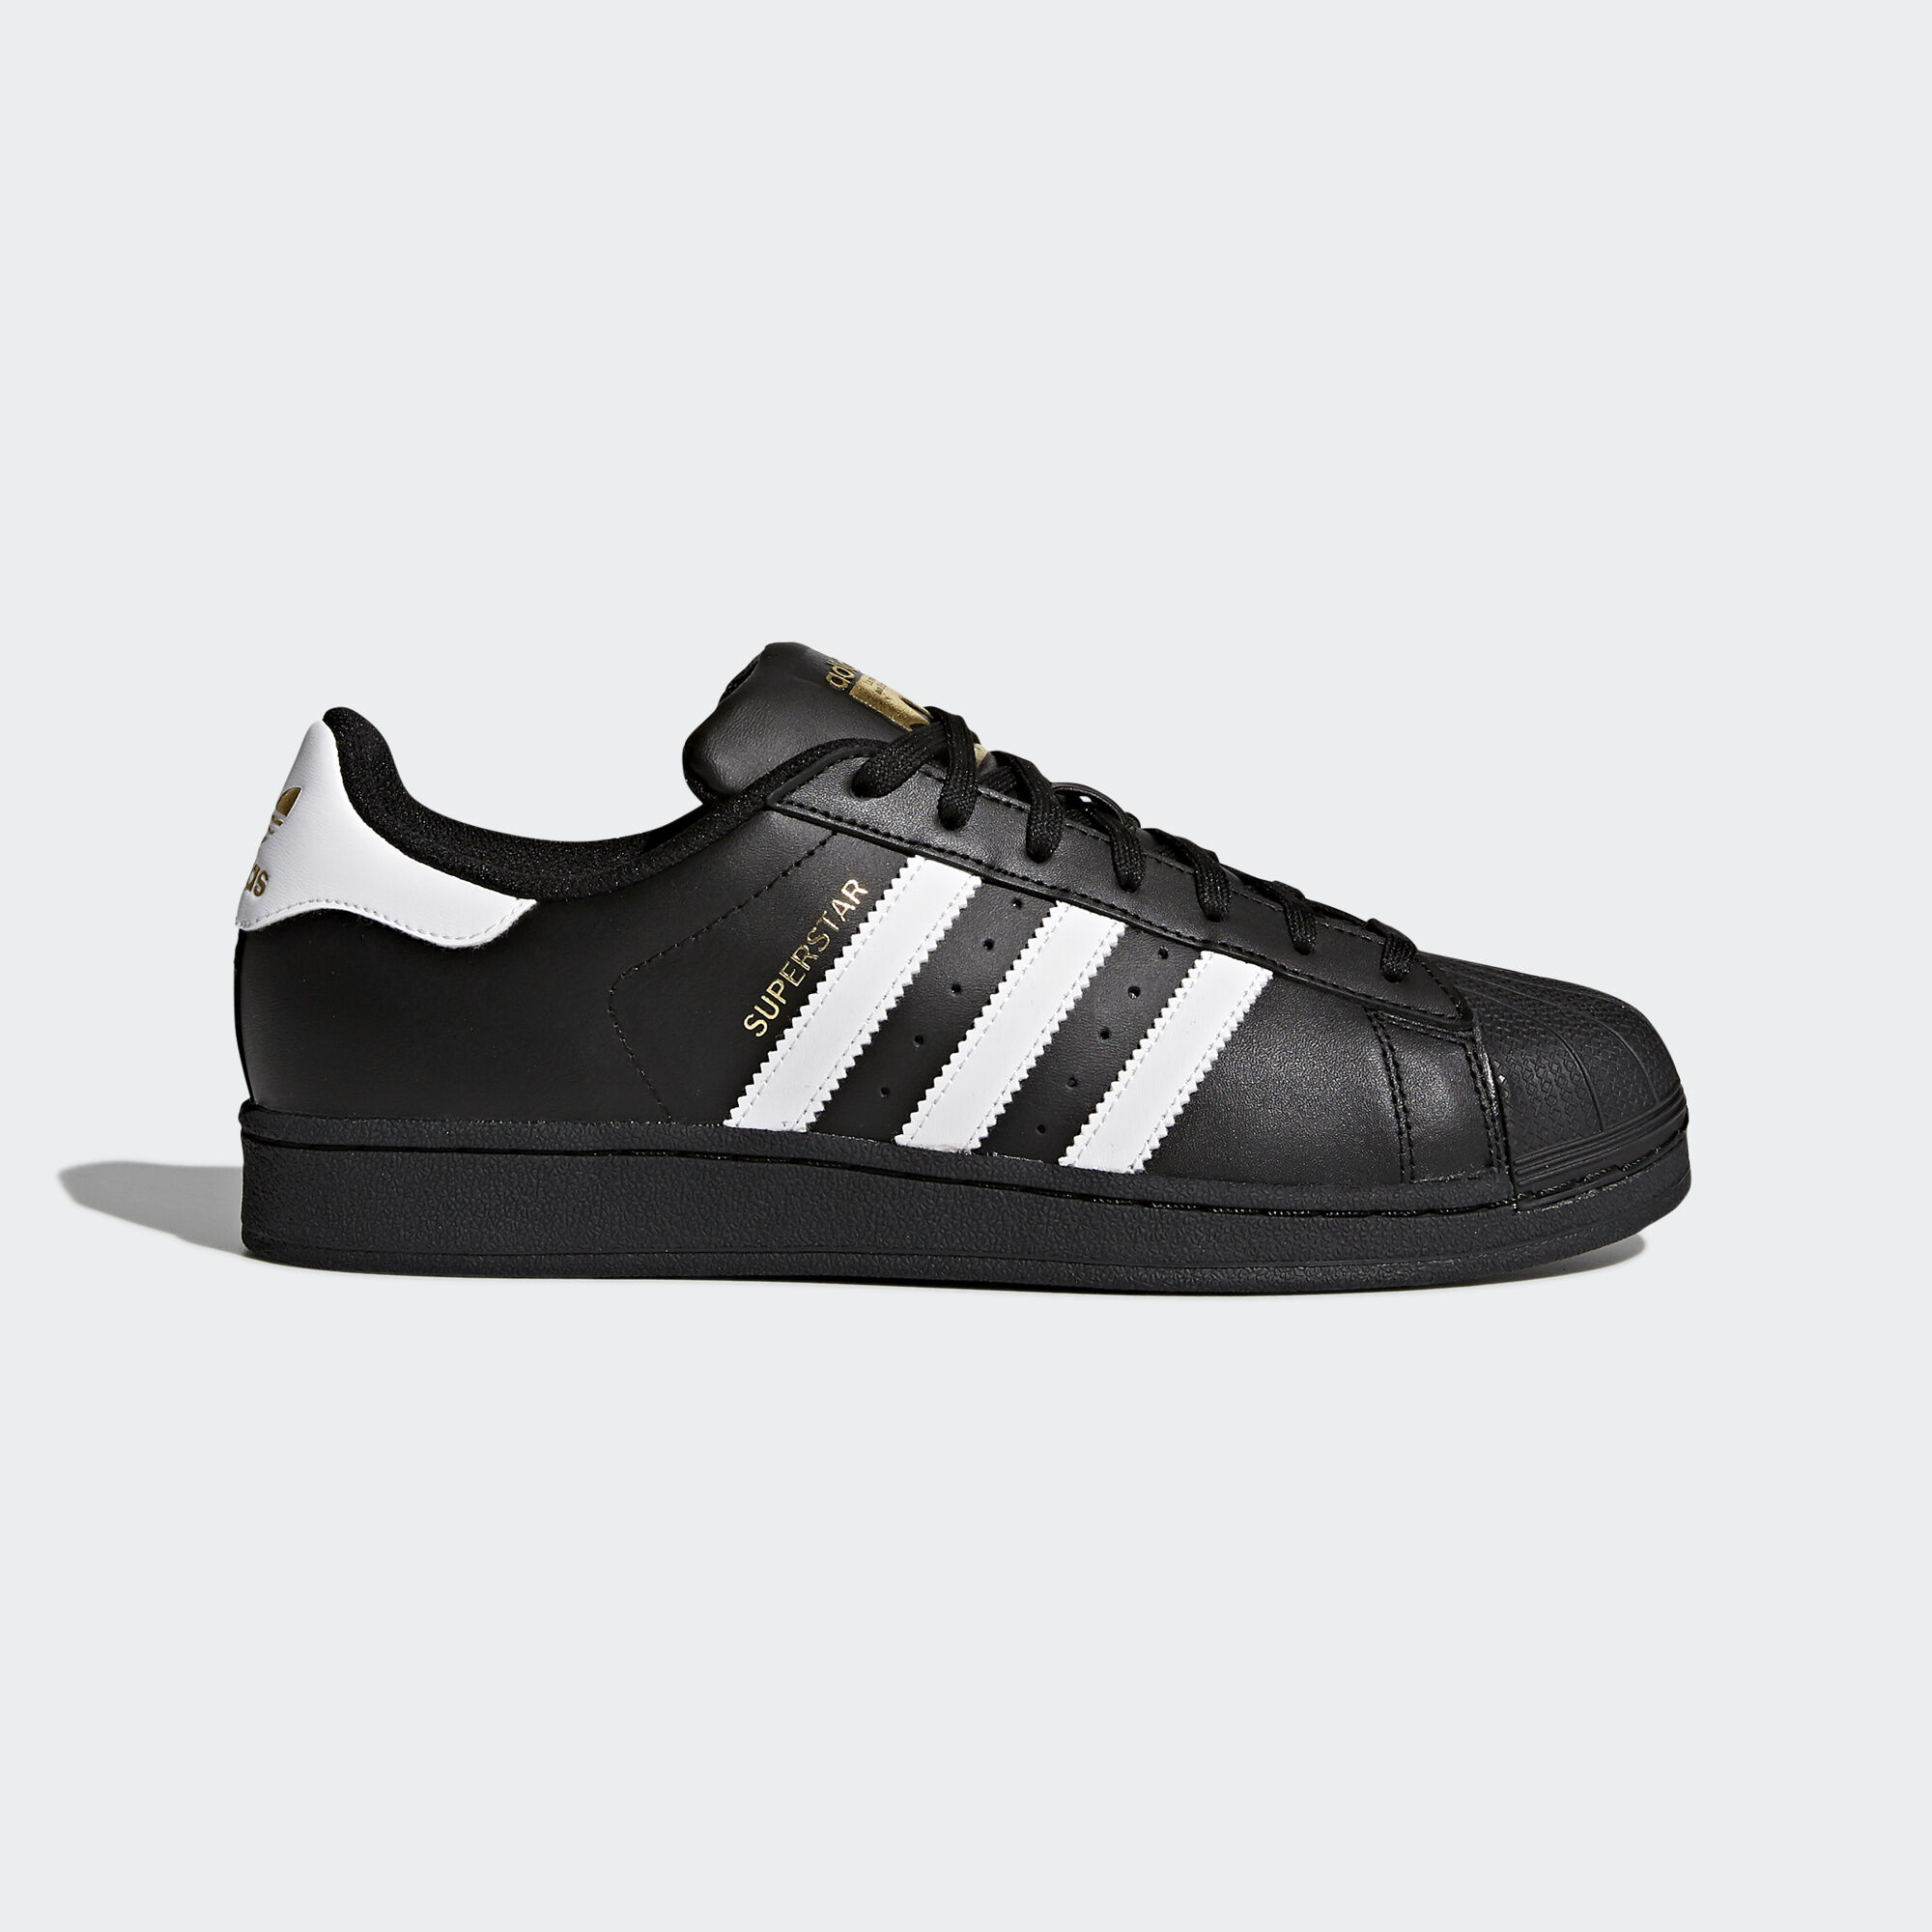 Adidas Originals Shoes Types